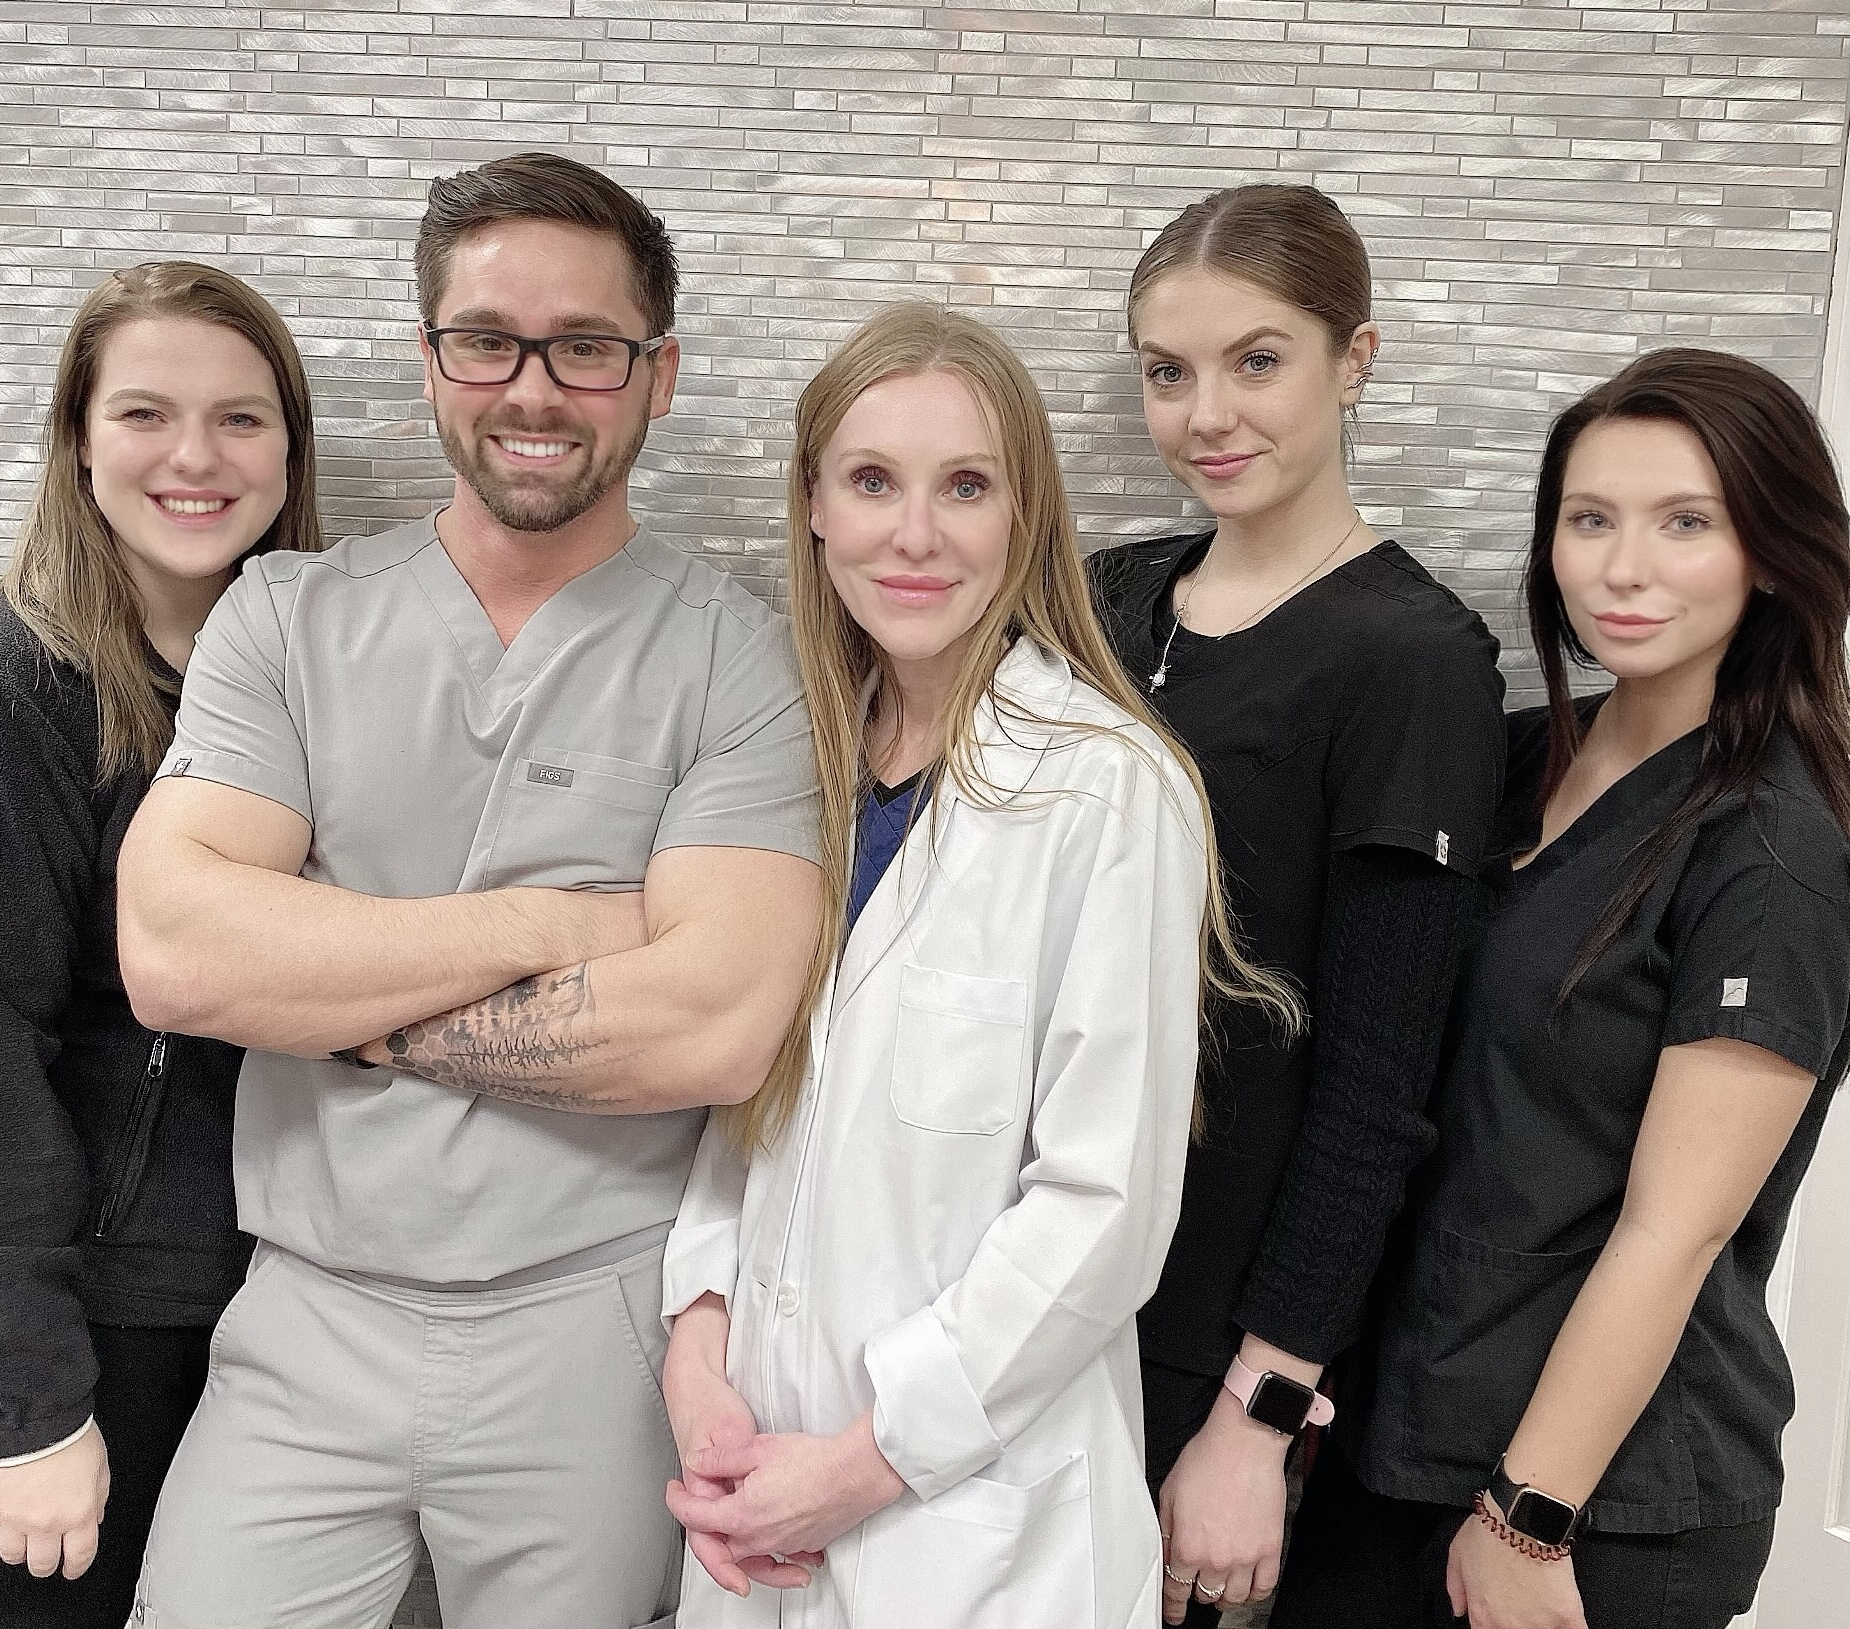 Joules MedSpa and Laser Center Staff